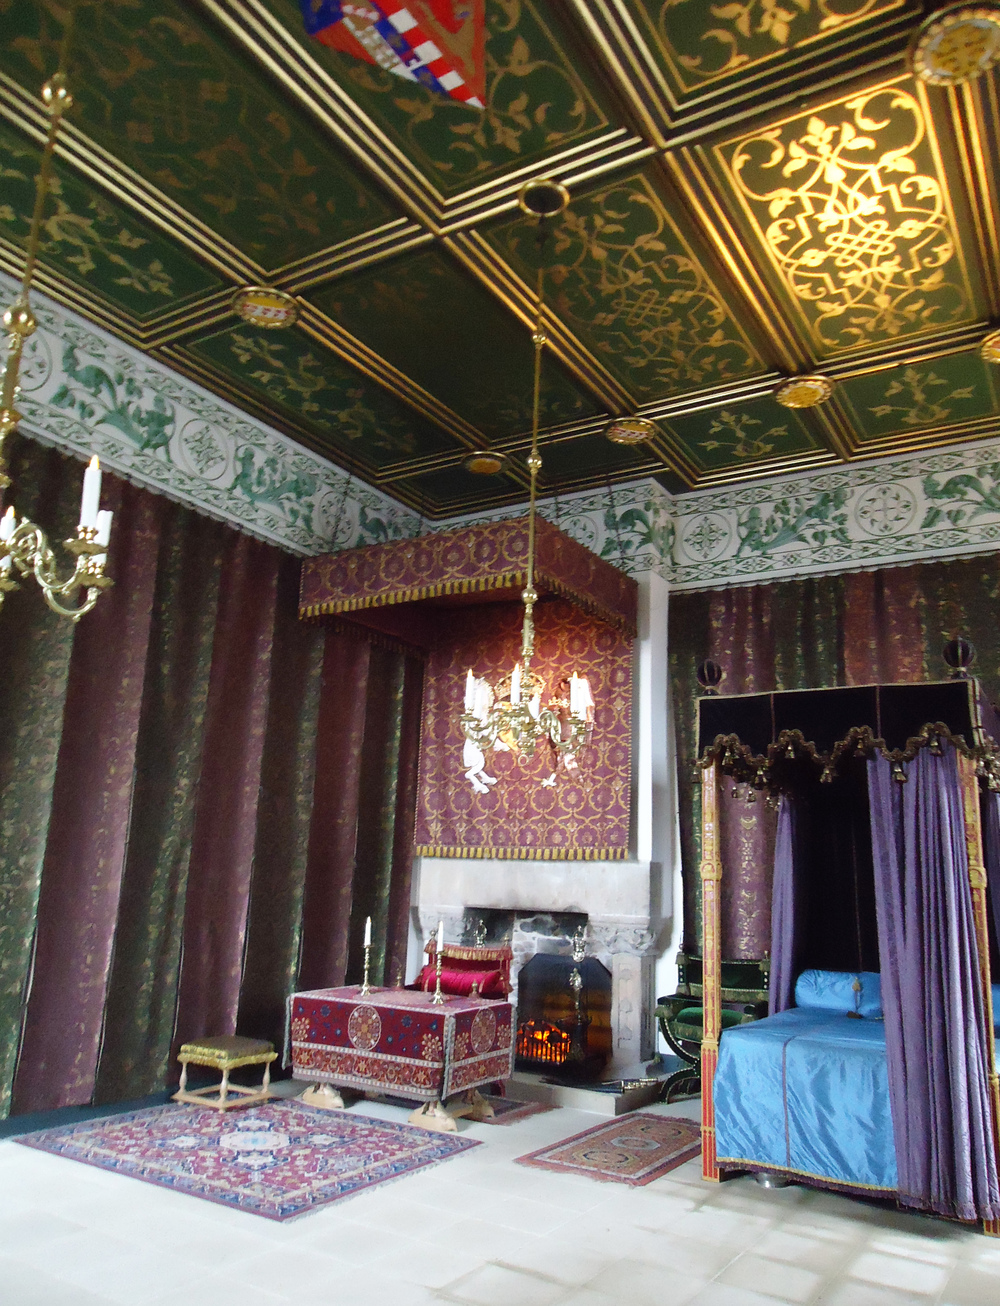 Stirling Castle interior